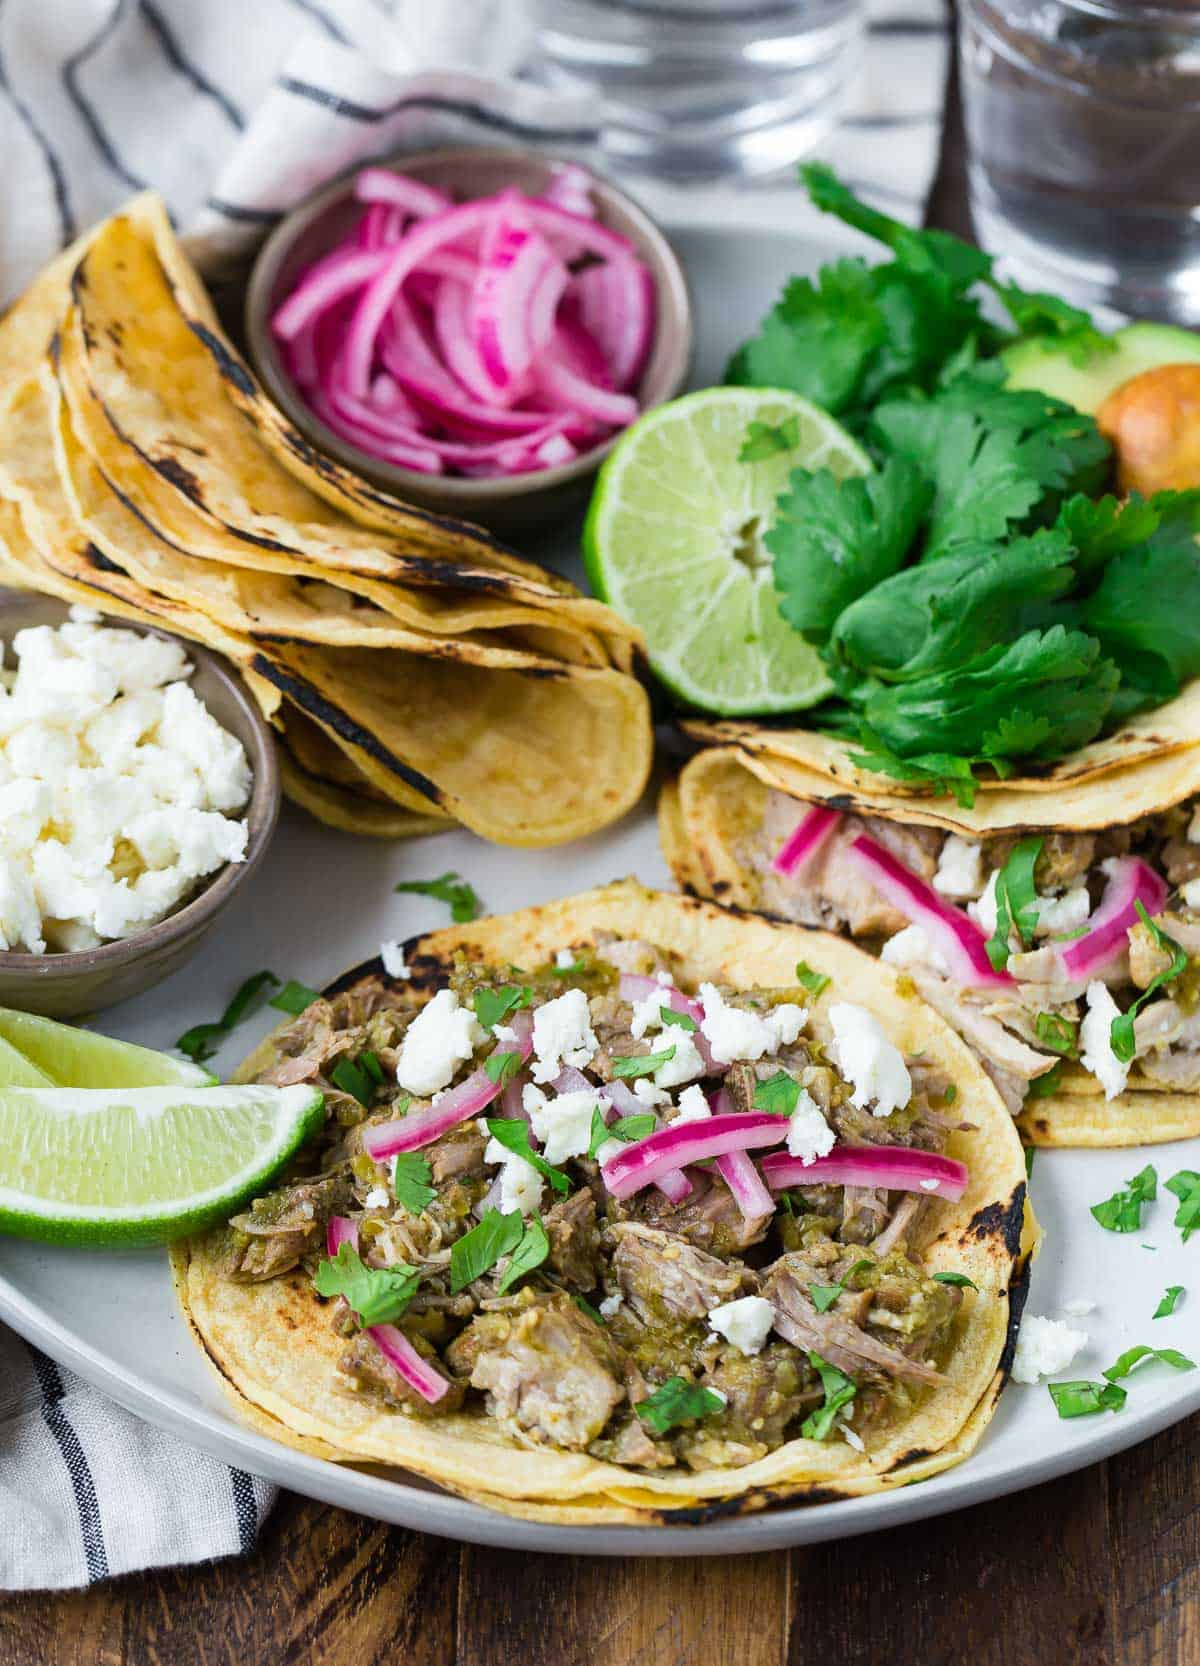 Amazing slow cooker pork tacos on a plate with assorted toppings.